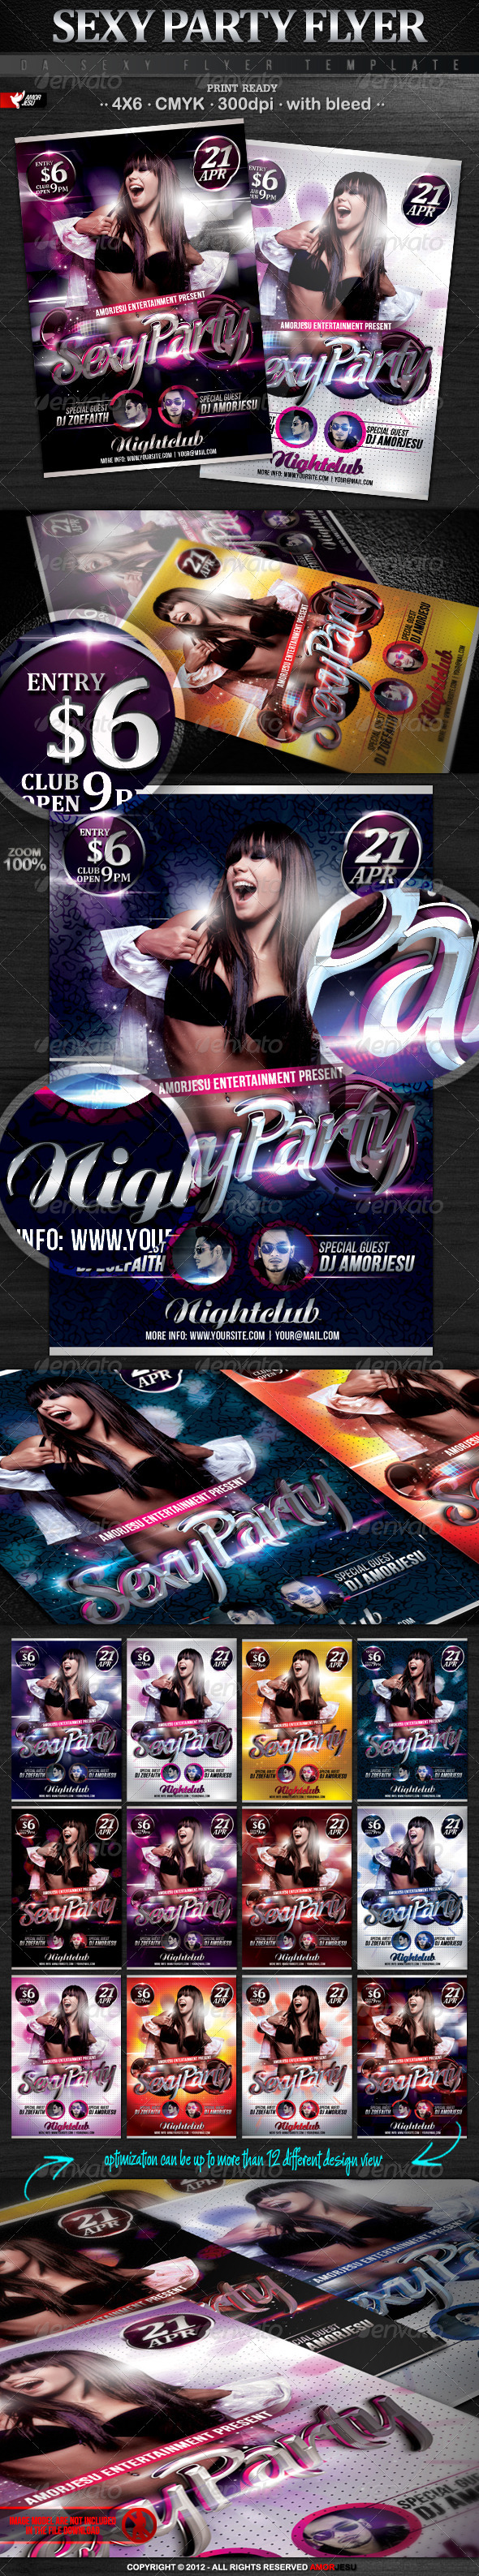 Sexy Party Flyer Template